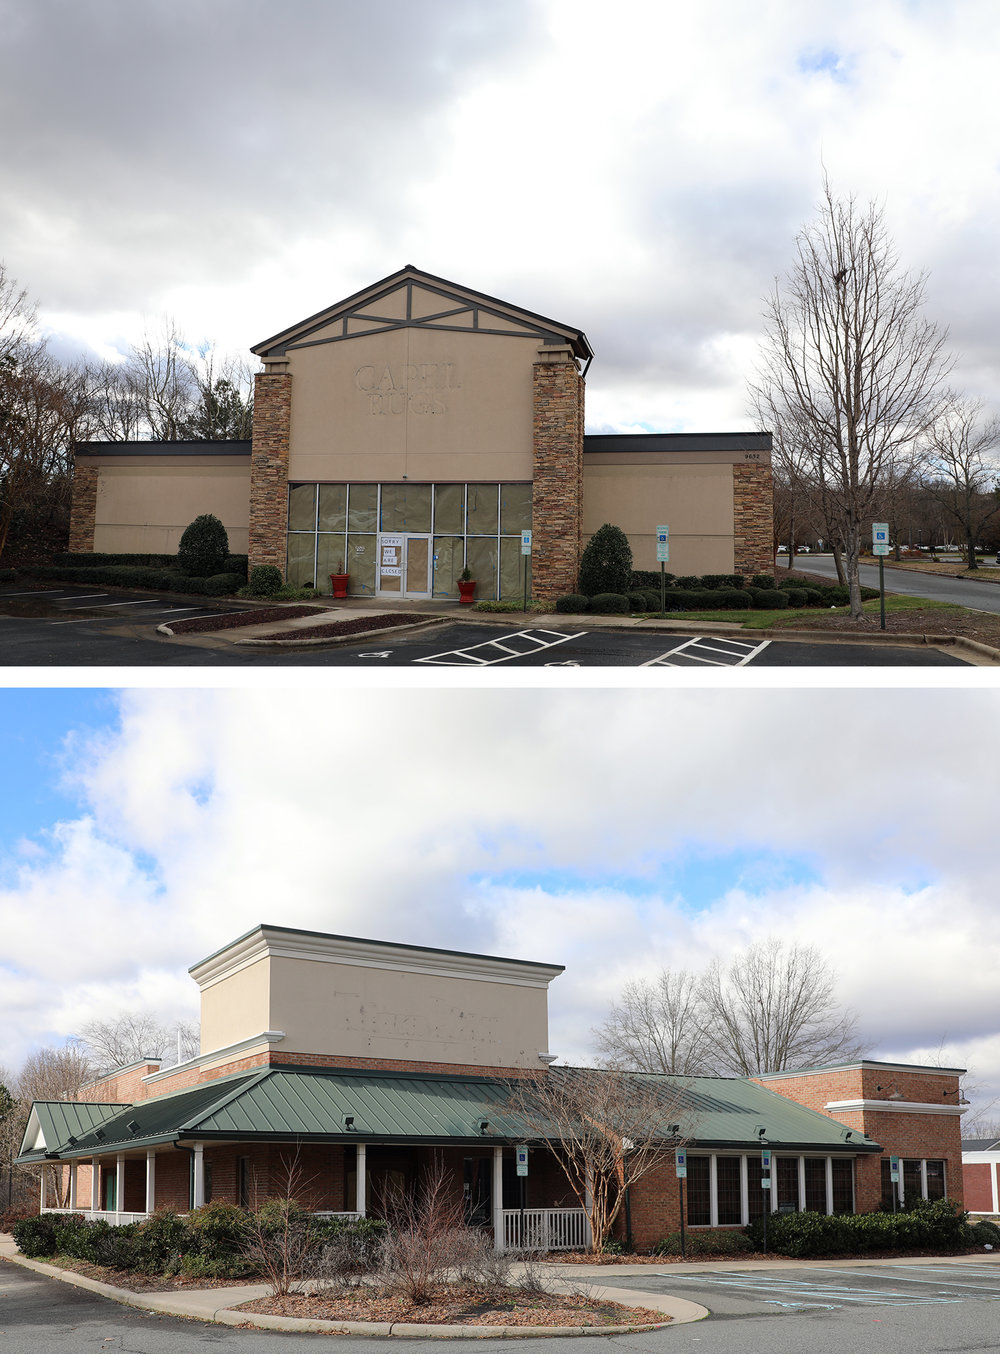 Ashley HomeStore licensee Broad River Retail announced plans to open a HomeStore Outlet in the former Capel Rug Outlet store (9632 E Independence Blvd.). Just down the road, Discount Tire has requested rezoning at the former Tilted Kilt location (1625 Windsor Square), which has been vacant since 2015. The tire retail chain would like to raze the current building to construct a new store. In 2018 the ABC Board applied to rezone the site but was denied. Since the ABC Board was denied rezoning within the last 12 months, Discount Tire must request special permission from the Planning Board to apply for rezoning. -